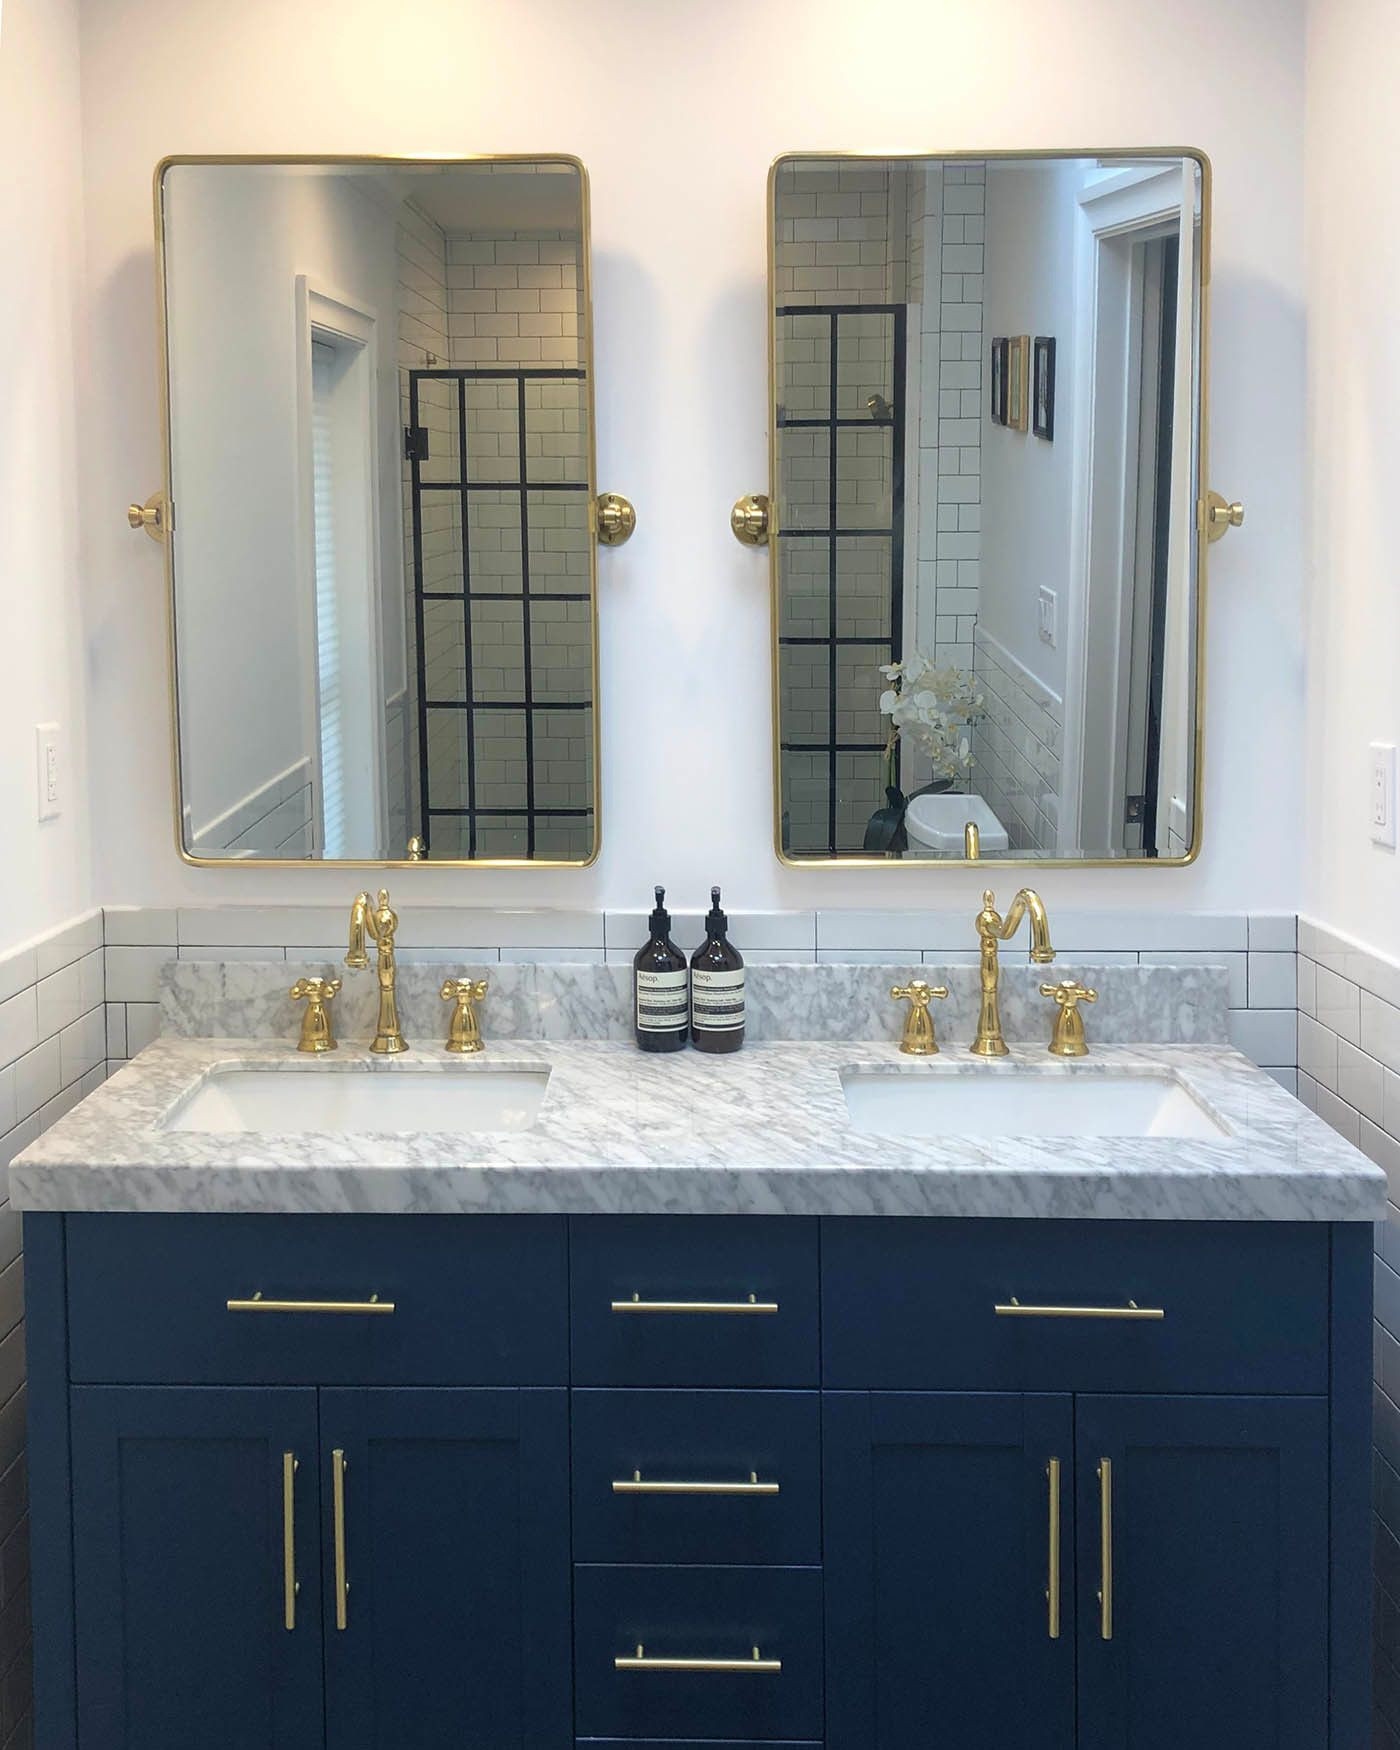 Paint To Use In Bathroom  The best bathroom paint colors and how to use them